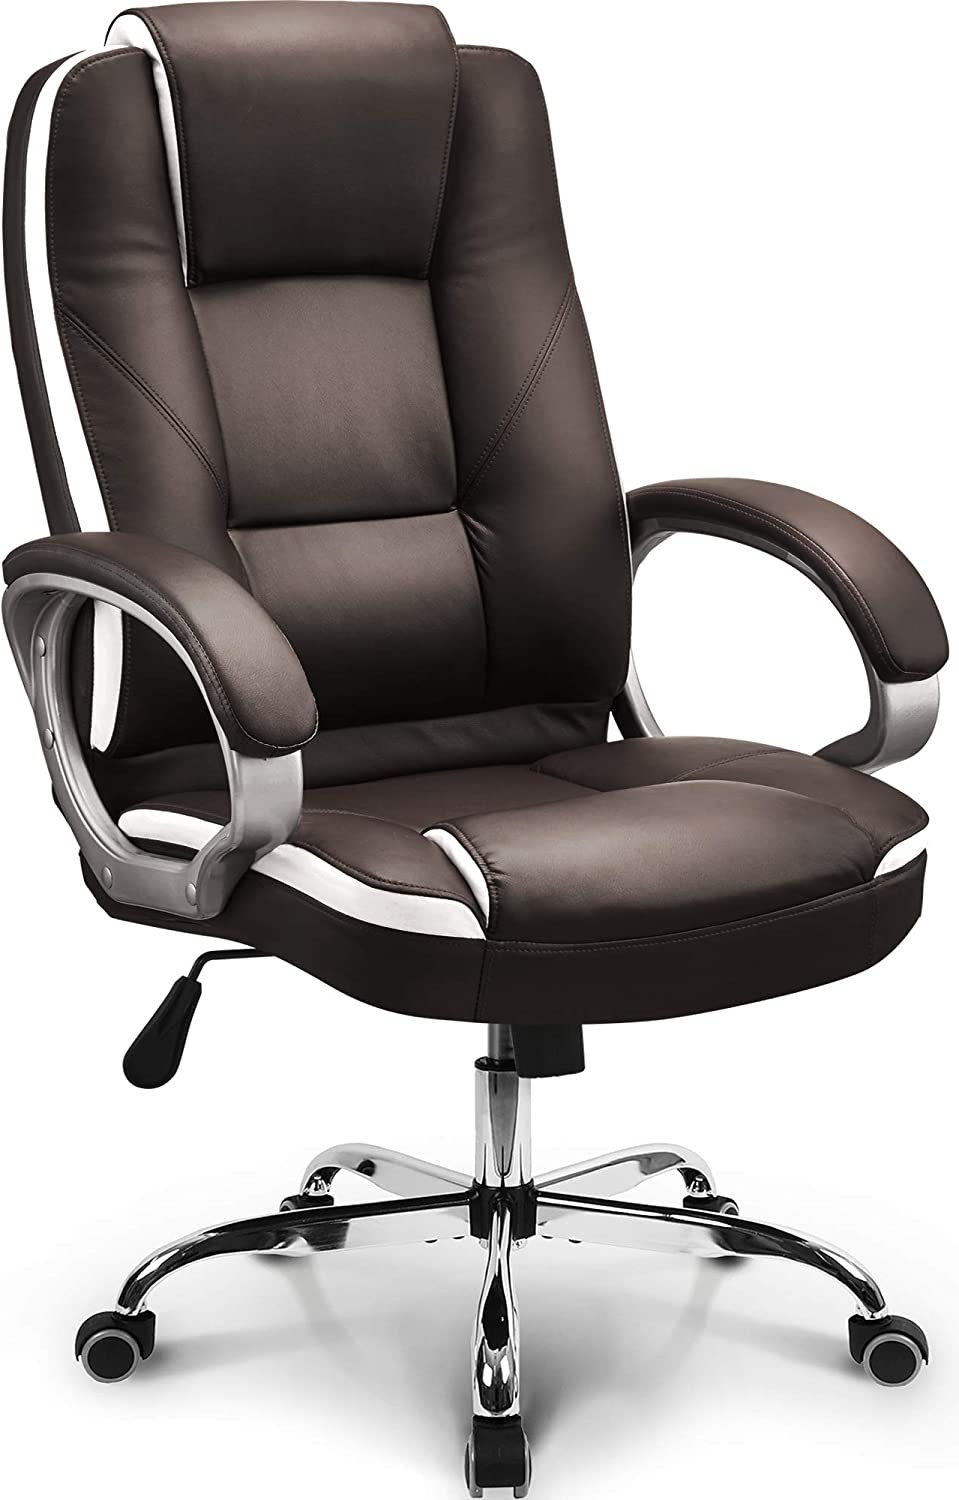 Amazon Com Neo Chair Office Chair Computer Desk Chair Gaming Ergonomic High Back Cushion Lumbar Support With Wheels Comfortable Brown Leather Racing Seat Adjustable Swivel Rolling Home Executive Kitchen Dining